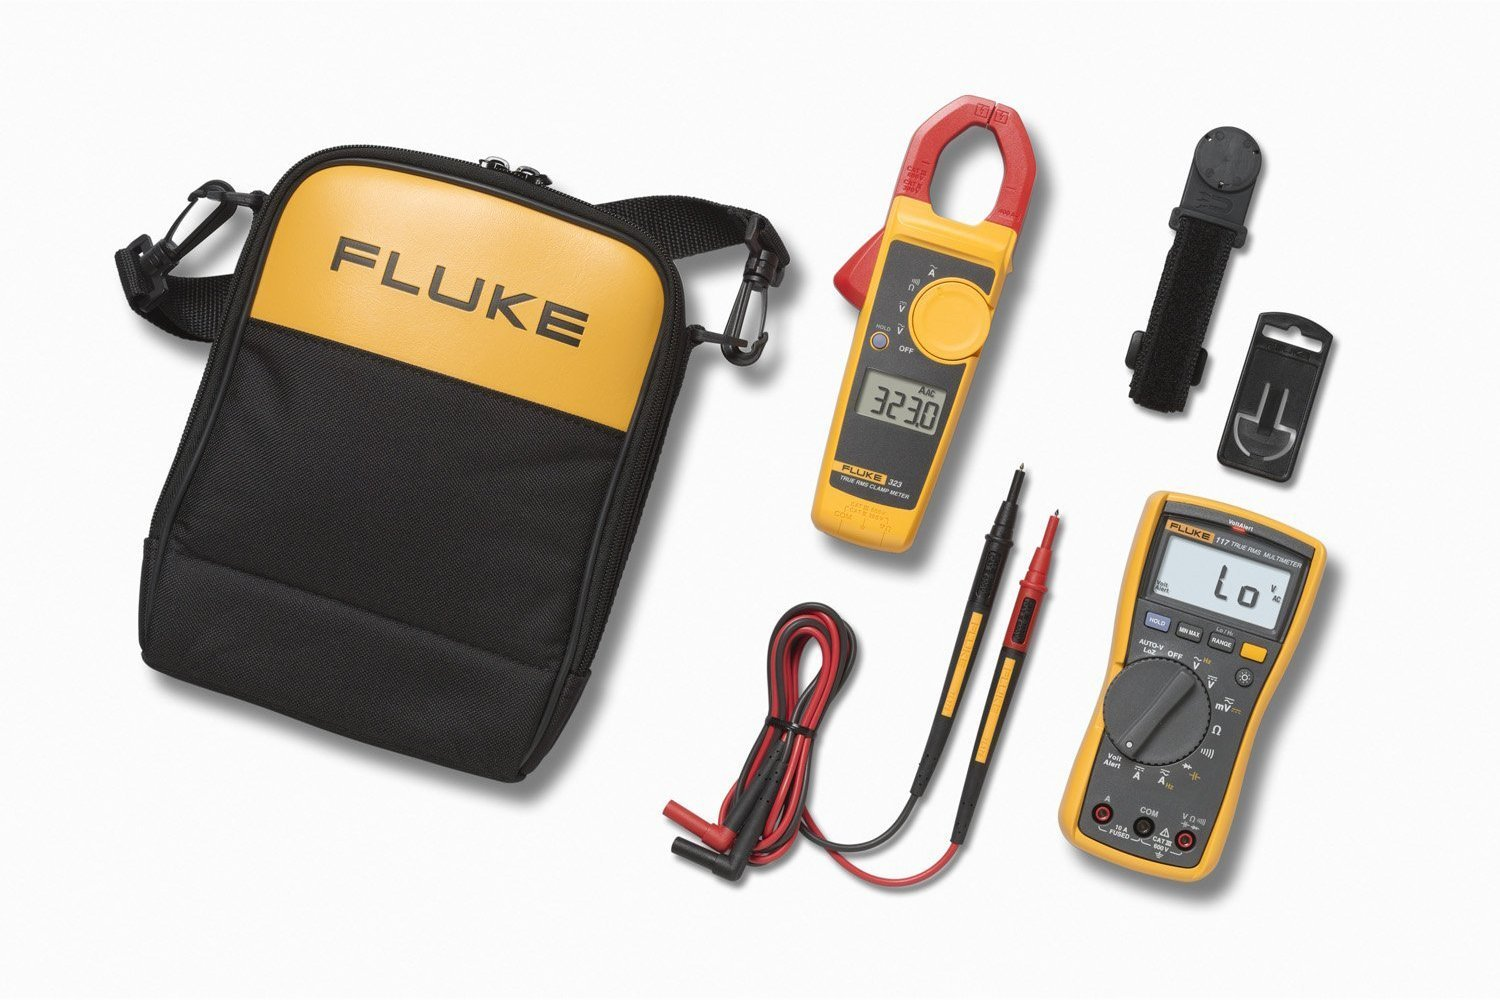 Fluke FLUKE-117/323 KIT Multimeter and Clamp Meter Combo Kit